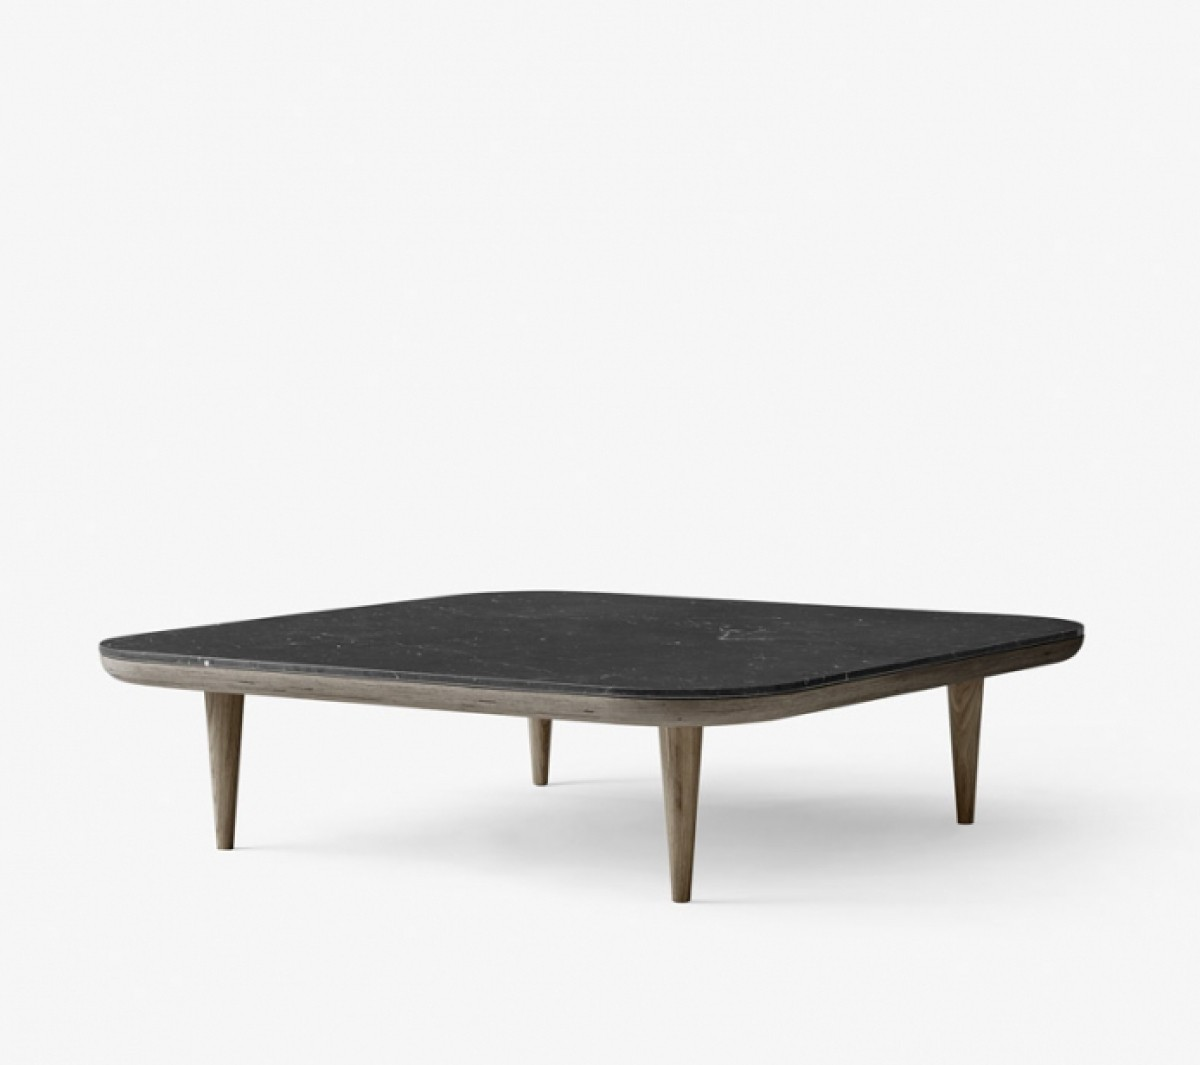 Fly Tables Fly Table By Andtradition Luxury Interior Design Online Shop